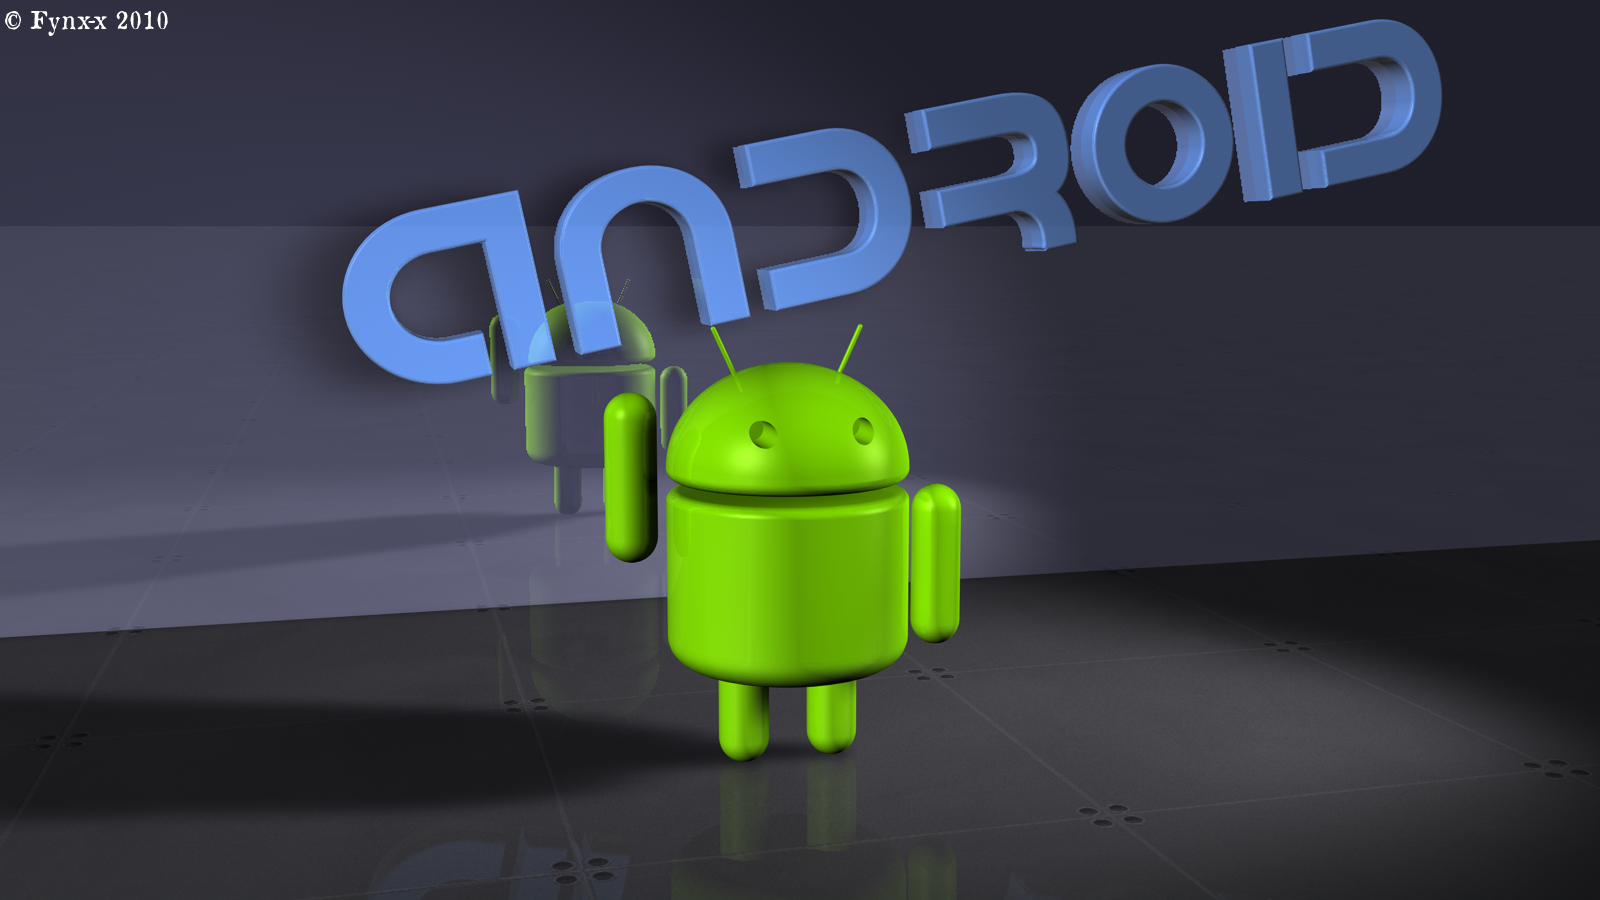 Android Wallpaper New Best Wallpapers 2011 indexwallpaper 1600x900